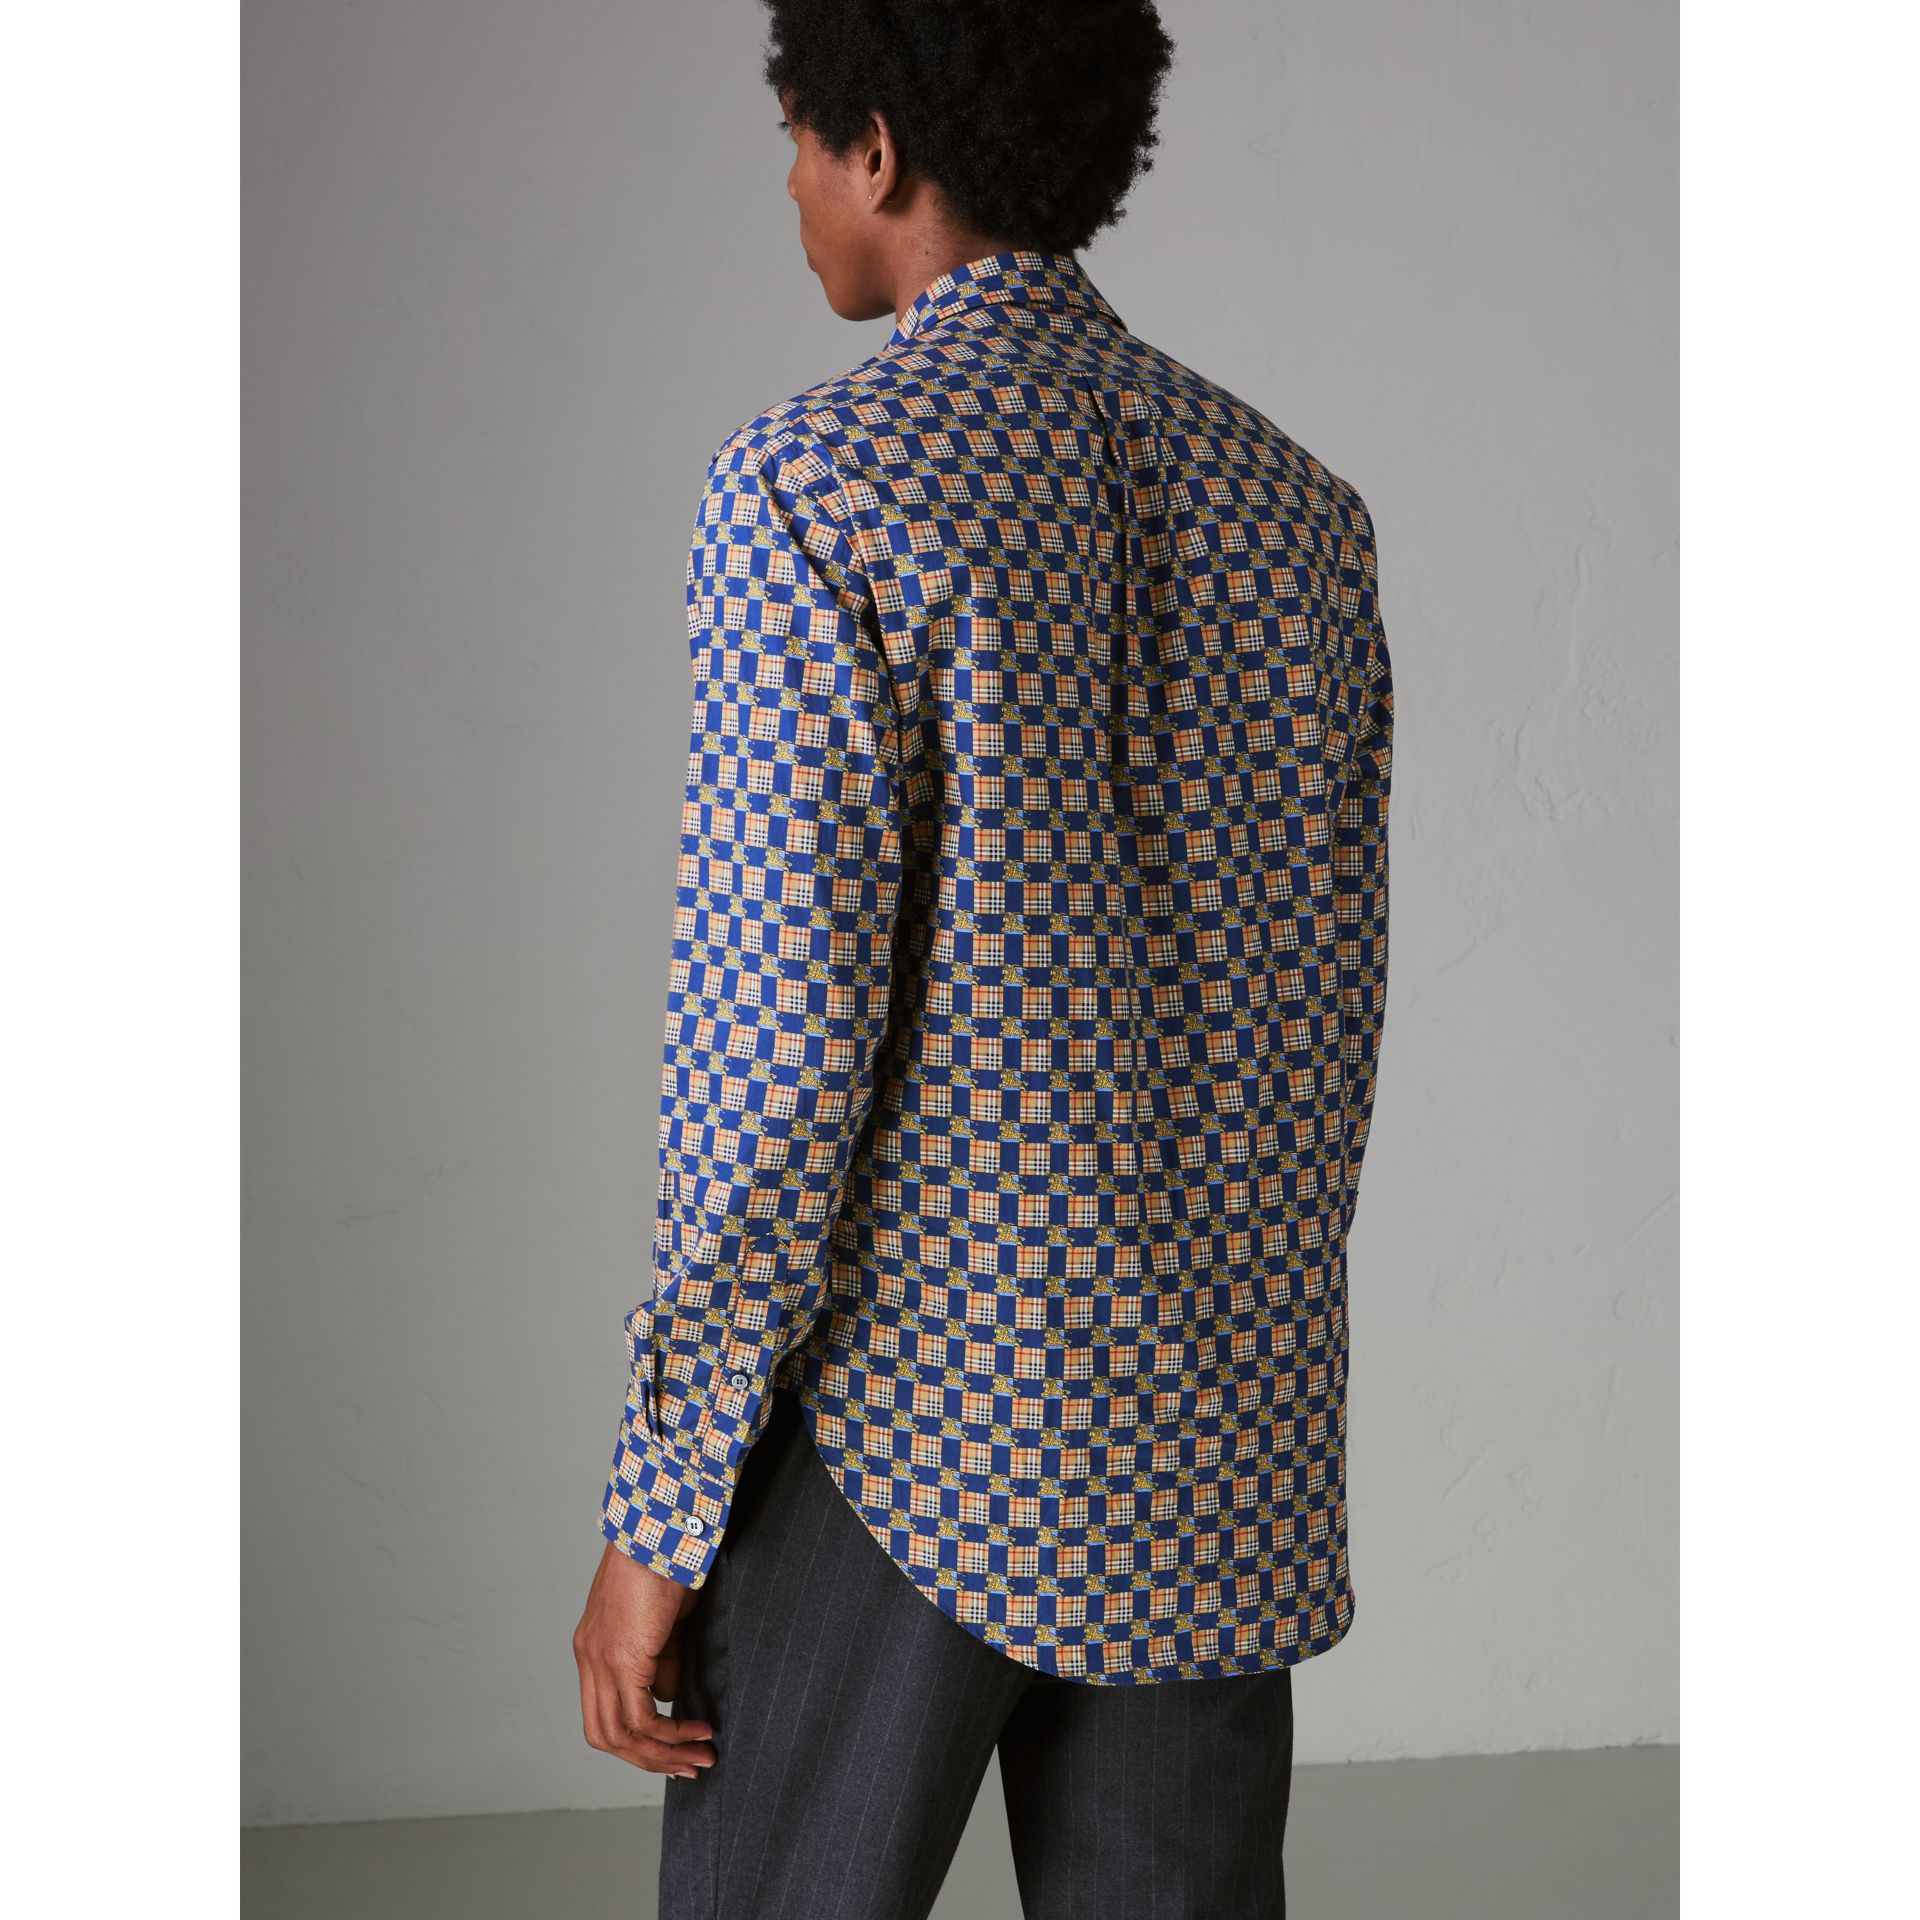 Tiled Archive Print Cotton Shirt in Navy - Men | Burberry - gallery image 2